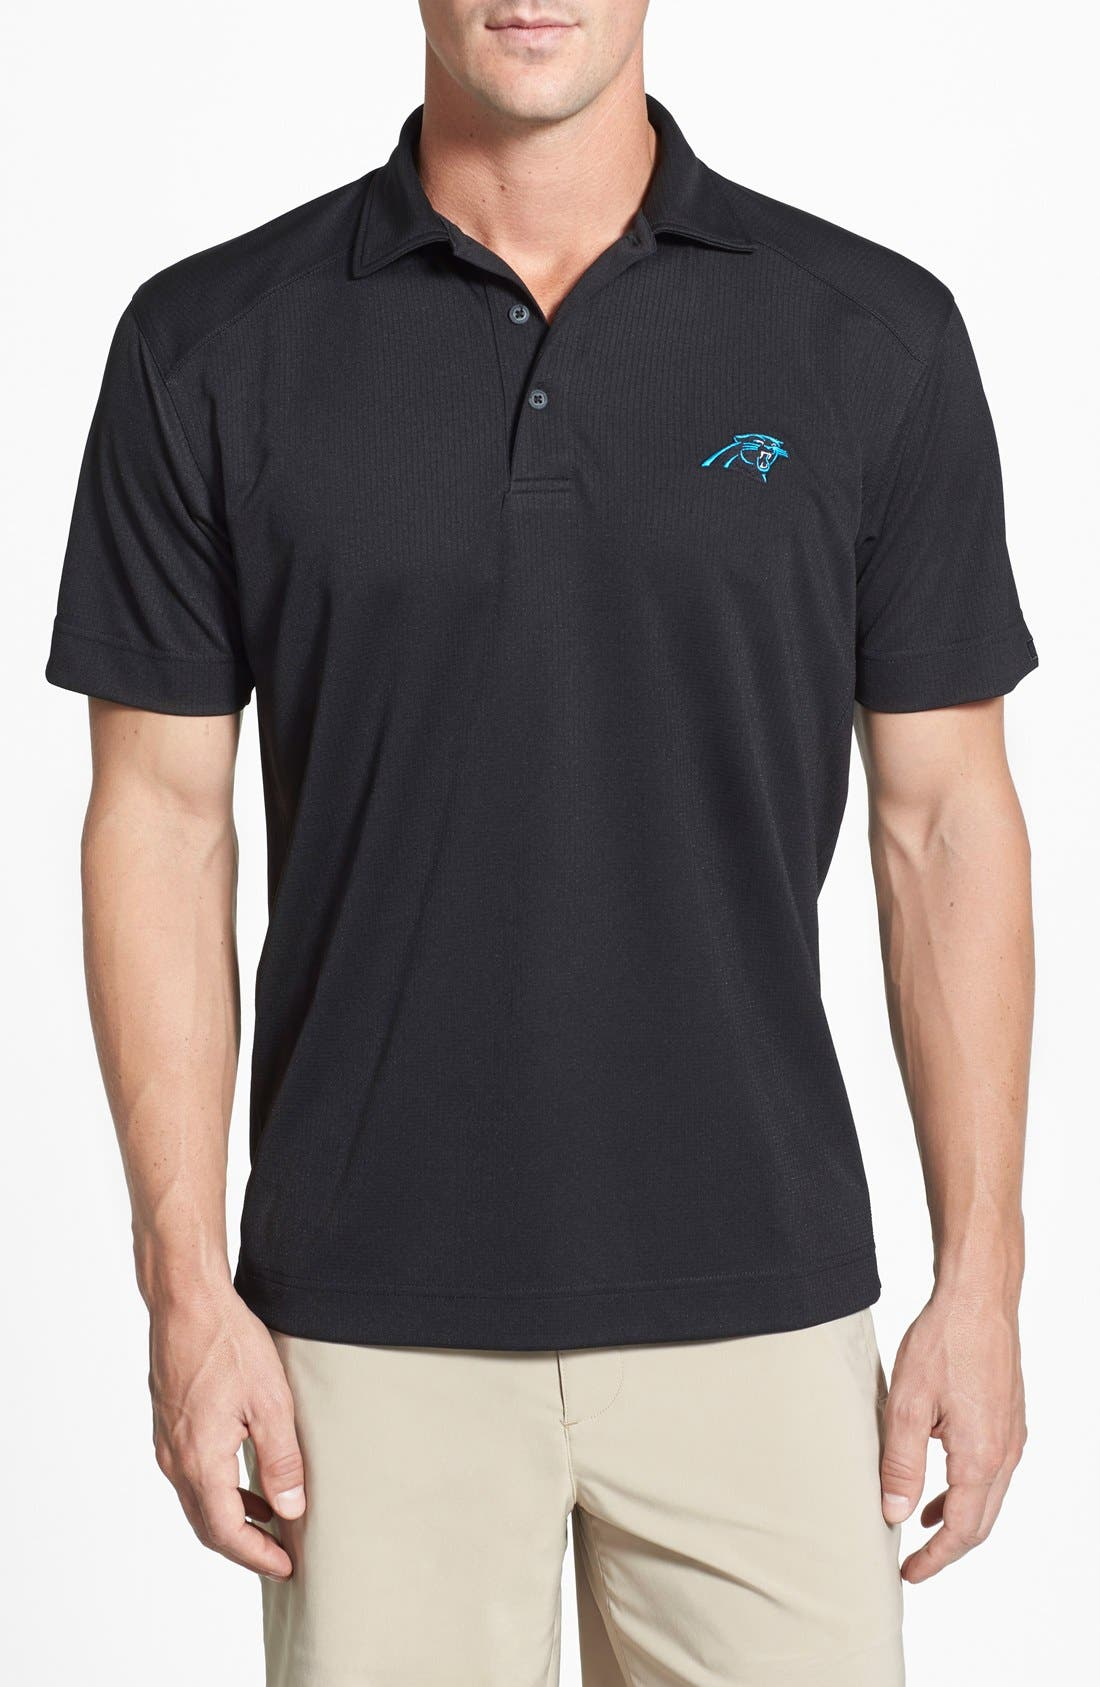 Carolina Panthers - Genre DryTec Moisture Wicking Polo,                             Main thumbnail 1, color,                             001